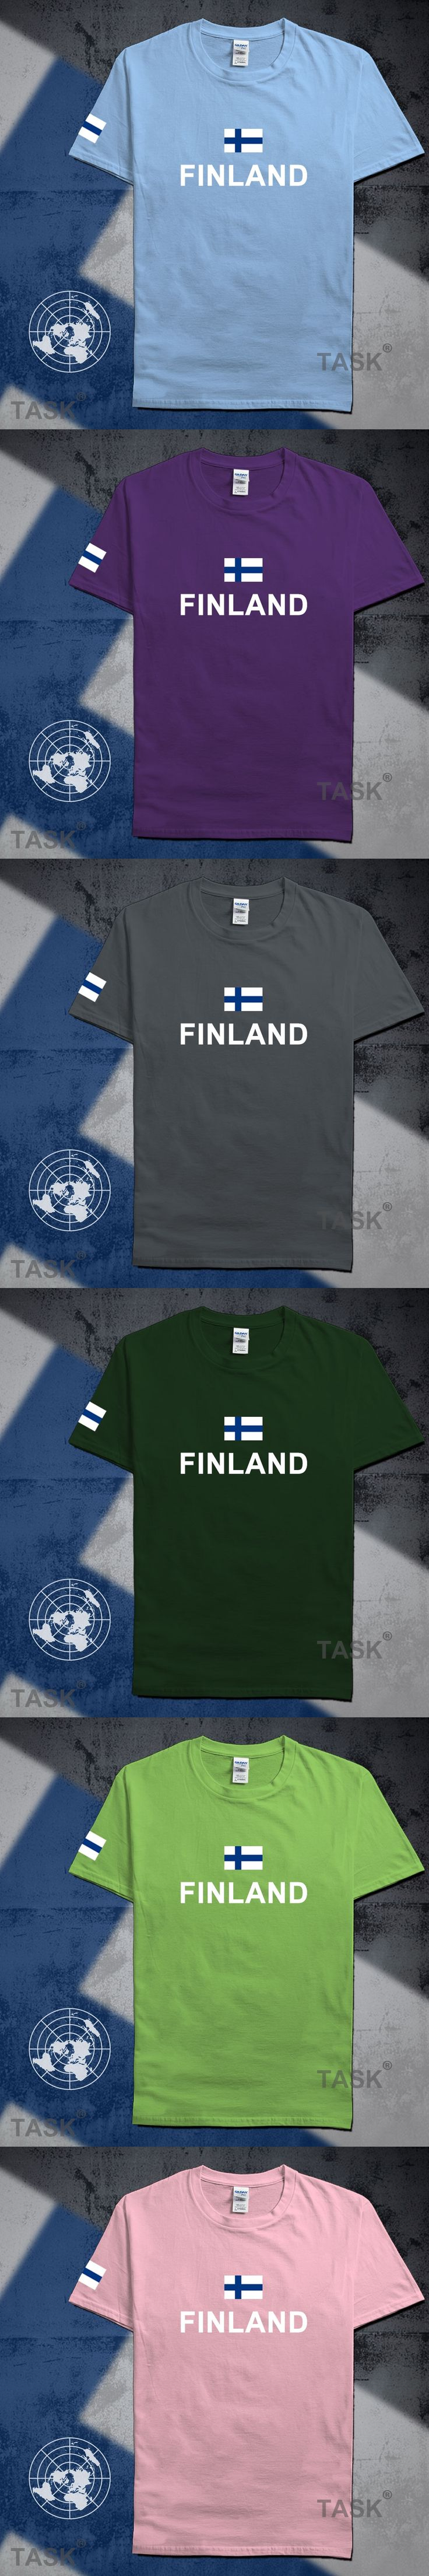 Finland mens t shirts fashion 2017 jersey hip hop nations cotton t-shirt meeting fitness brand clothing tee country flag FIN FI